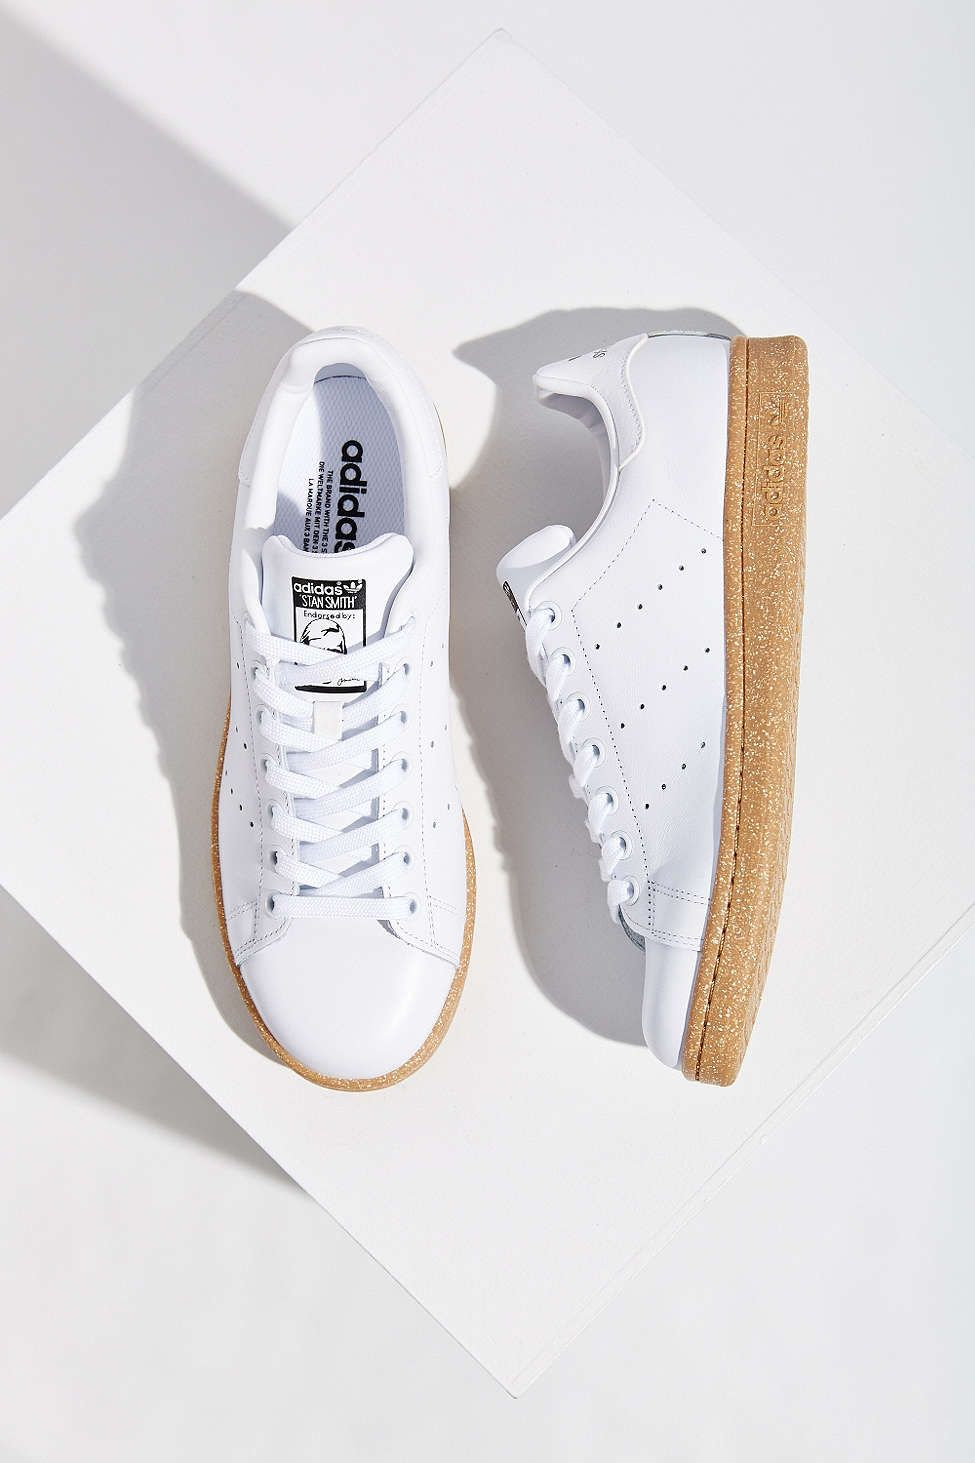 separation shoes ca7d0 a6262 adidas   stan smith   gum-sole sneaker